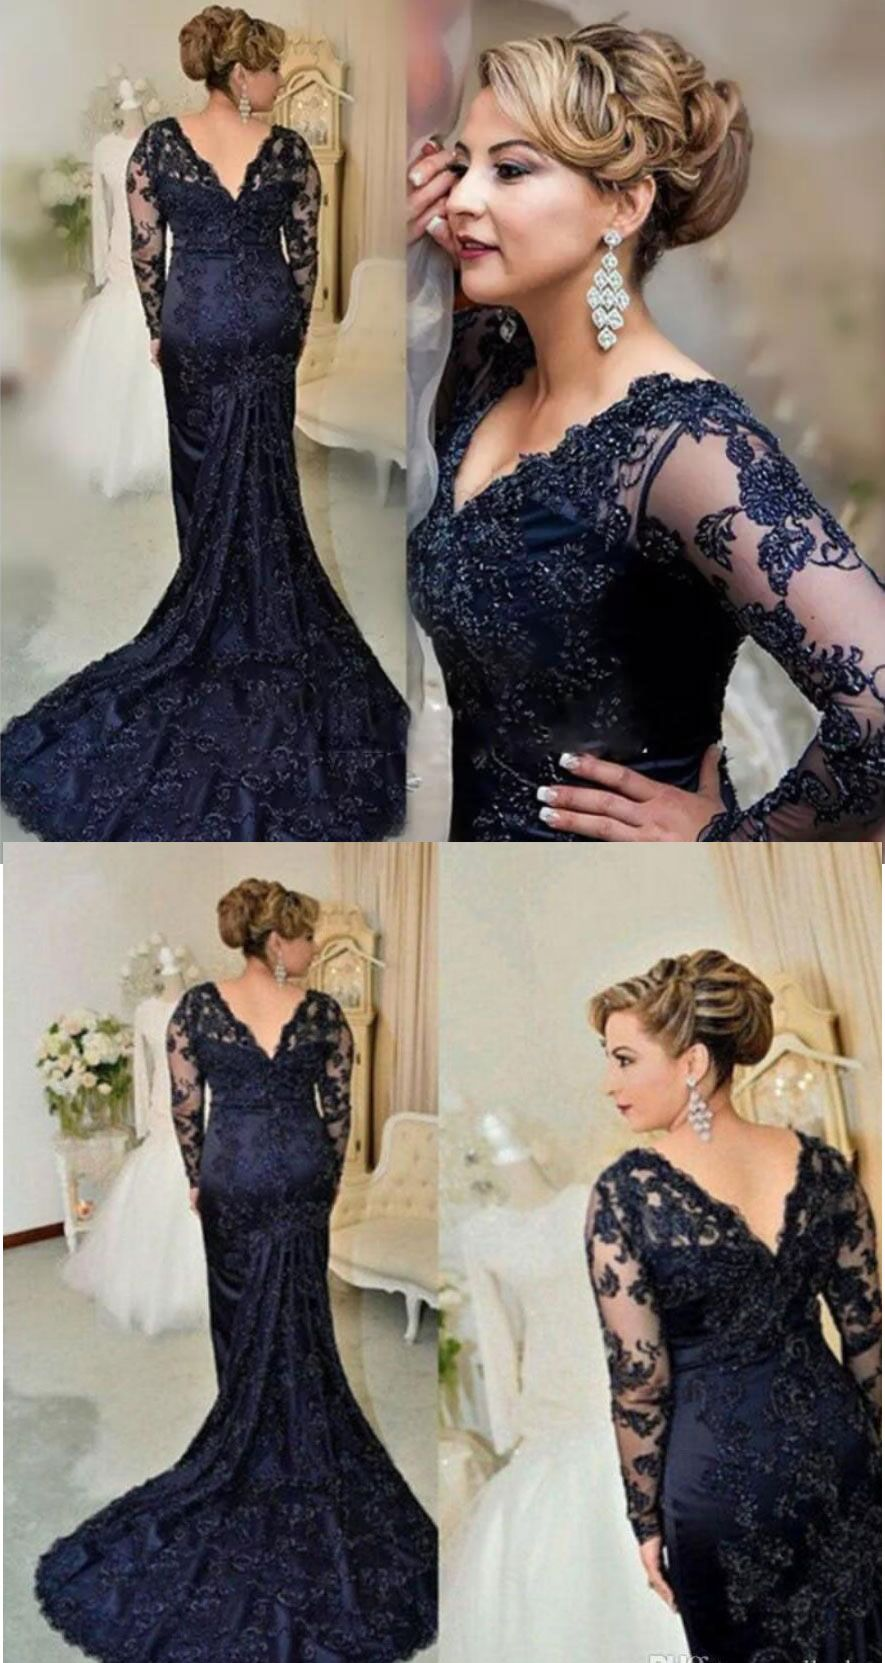 V Neck Navy Blue Mother Of The Bride Dress With Long Sleeves Appliques Navy Blue Wedding Dress Mother Of Bride Outfits Mother Of The Bride Dresses [ 1663 x 885 Pixel ]